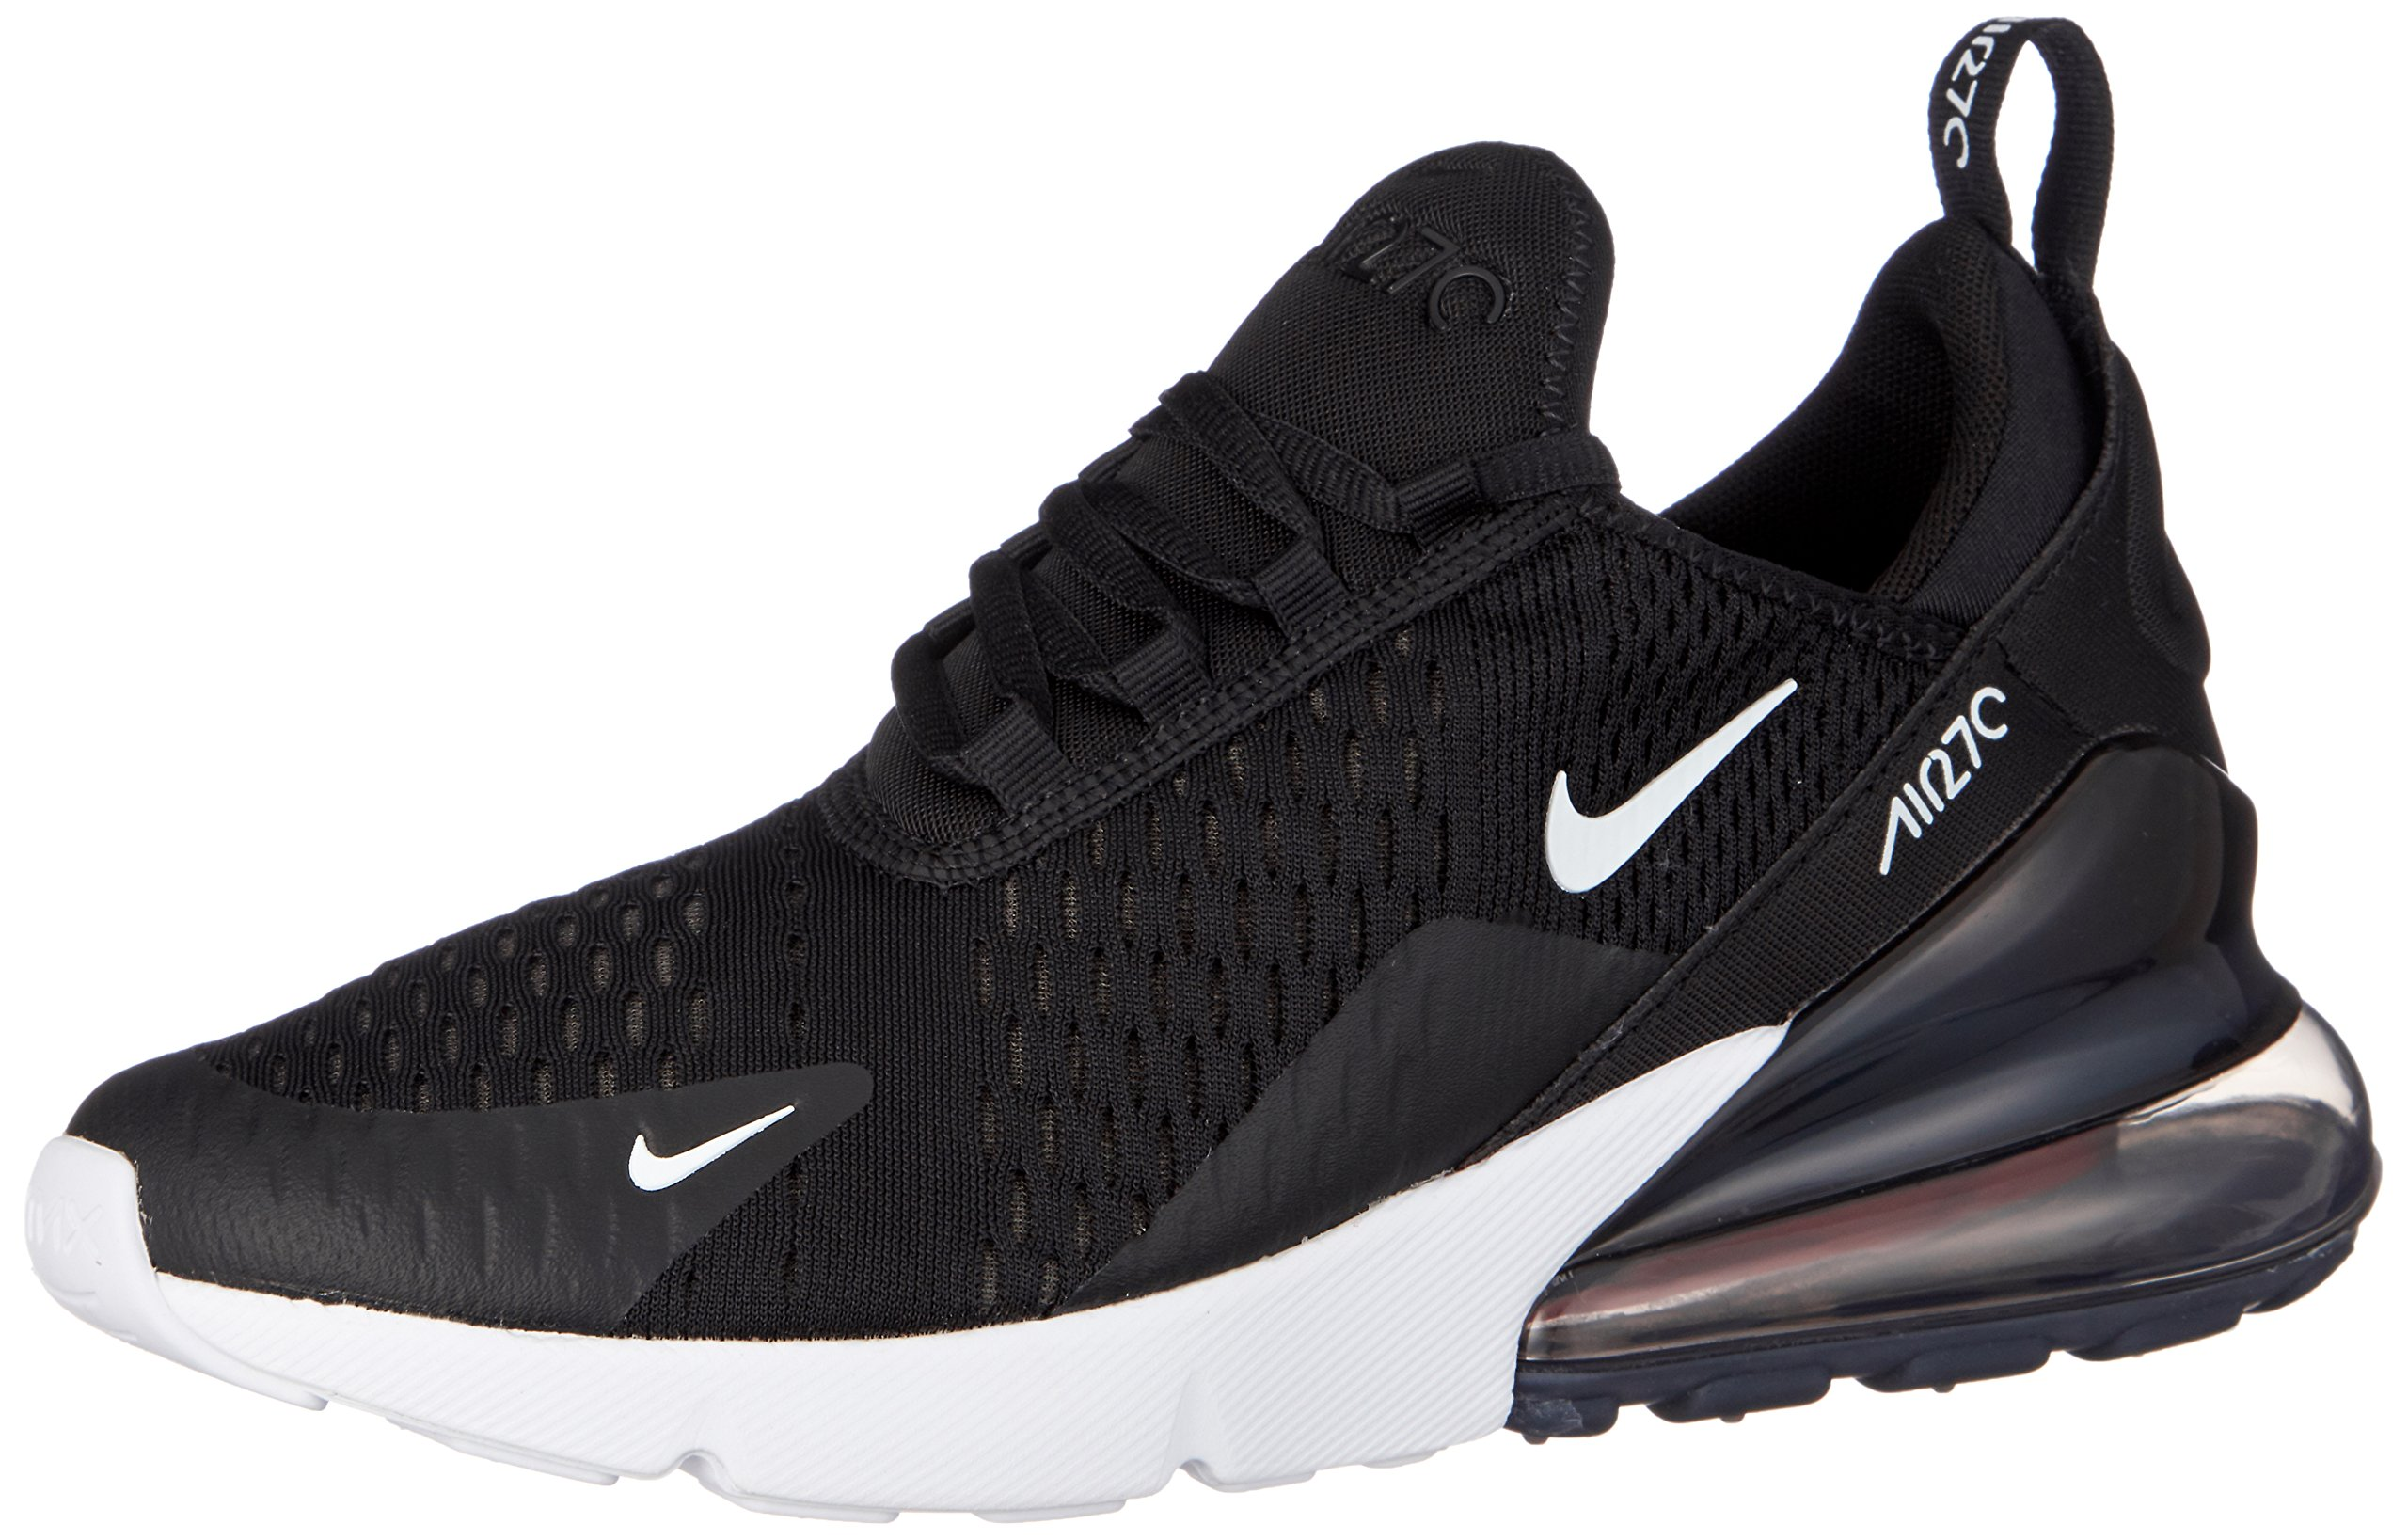 6fac336067 Nike Kids' Grade School Air Max 270 Shoes (3.5, Black/White/Anthracite) |  Art Yoga Studio